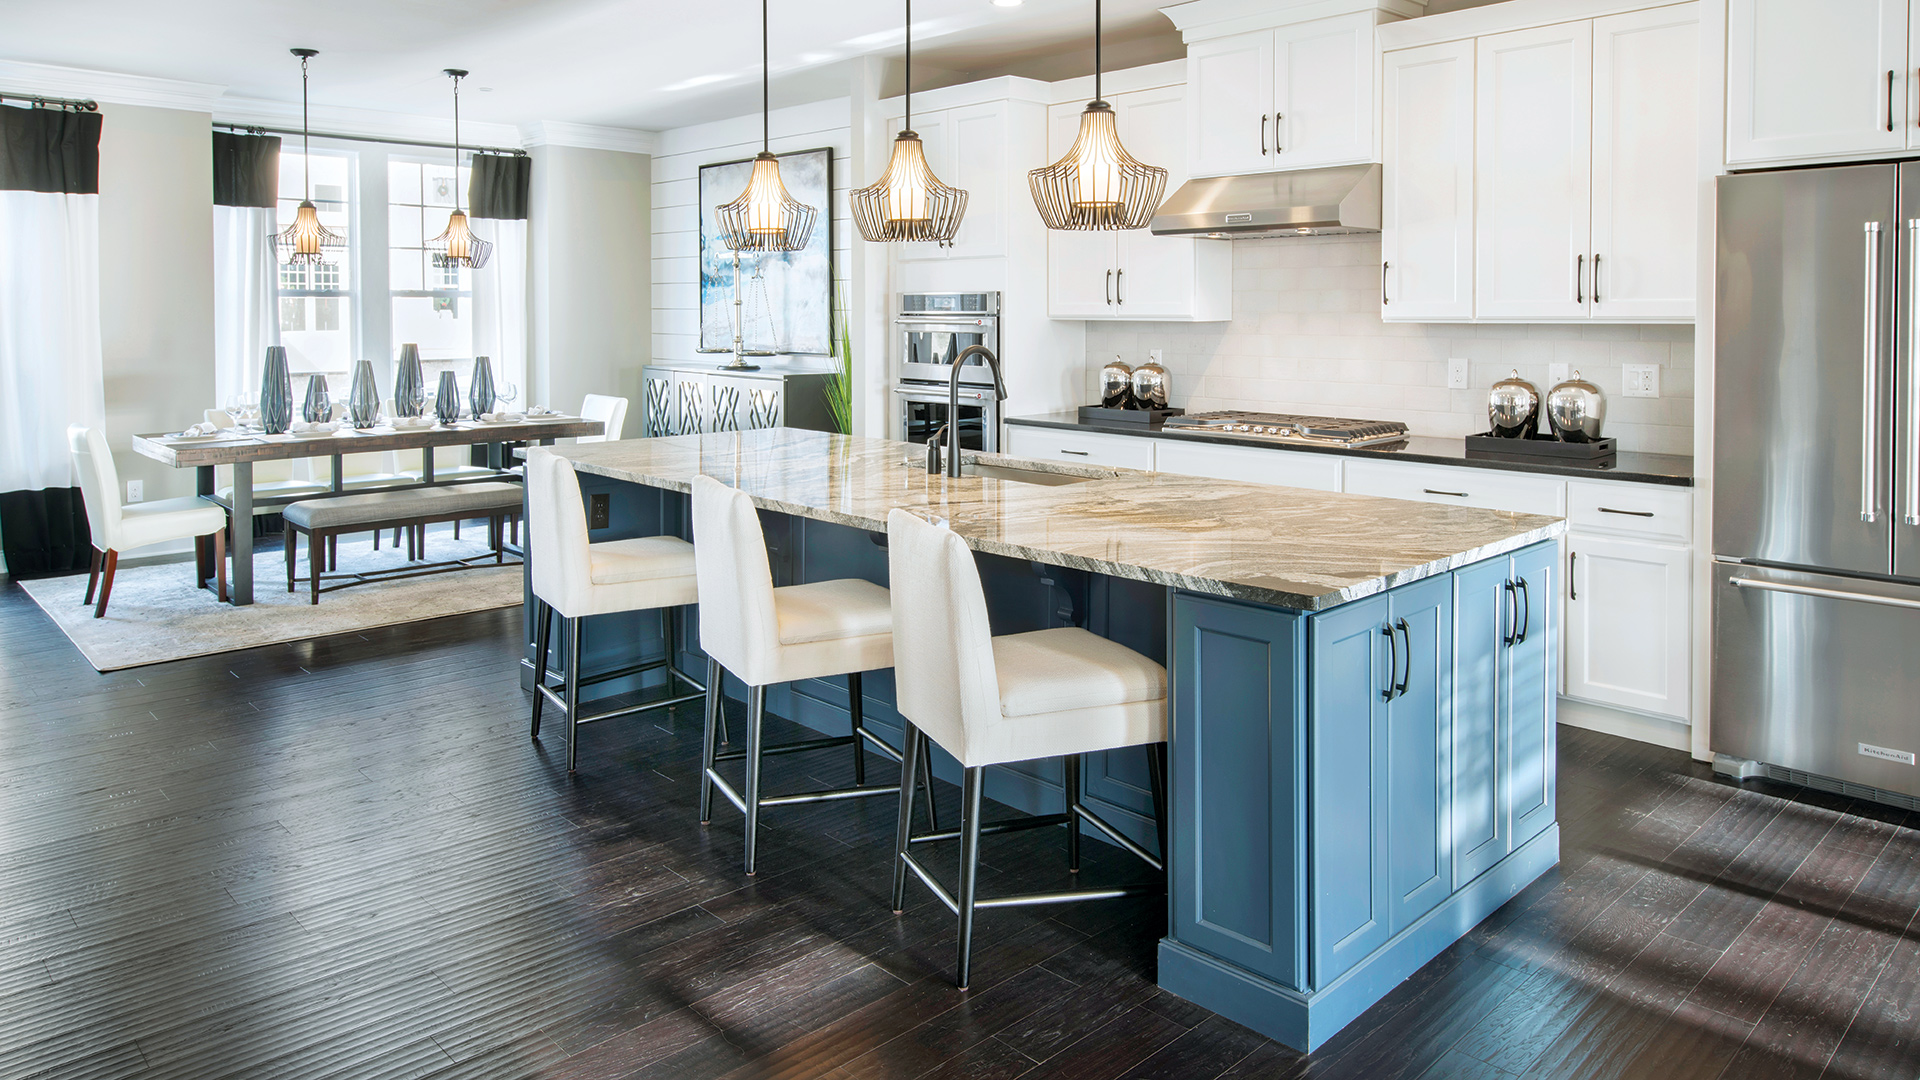 Open-concept kitchens are great for entertaining